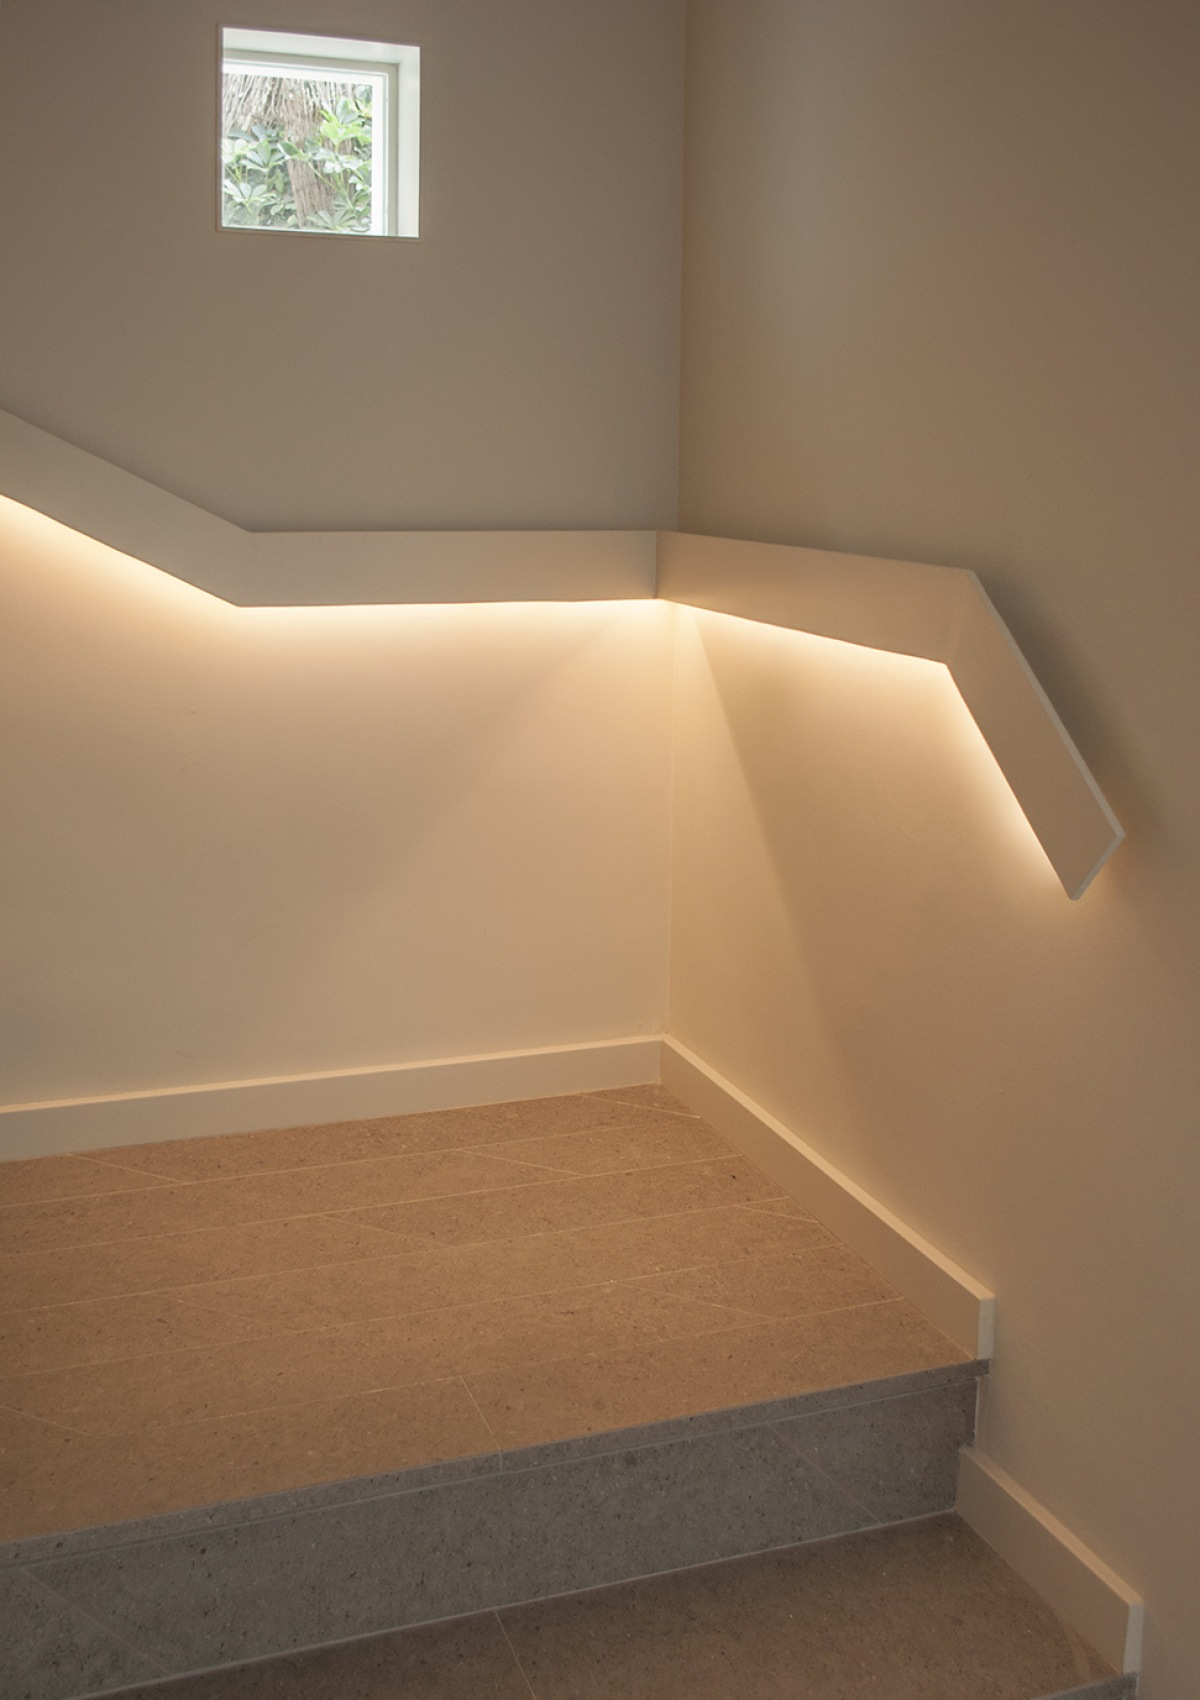 7-architecture-sitges-interior-design-barcelona-stairs-modern-lights-pavement